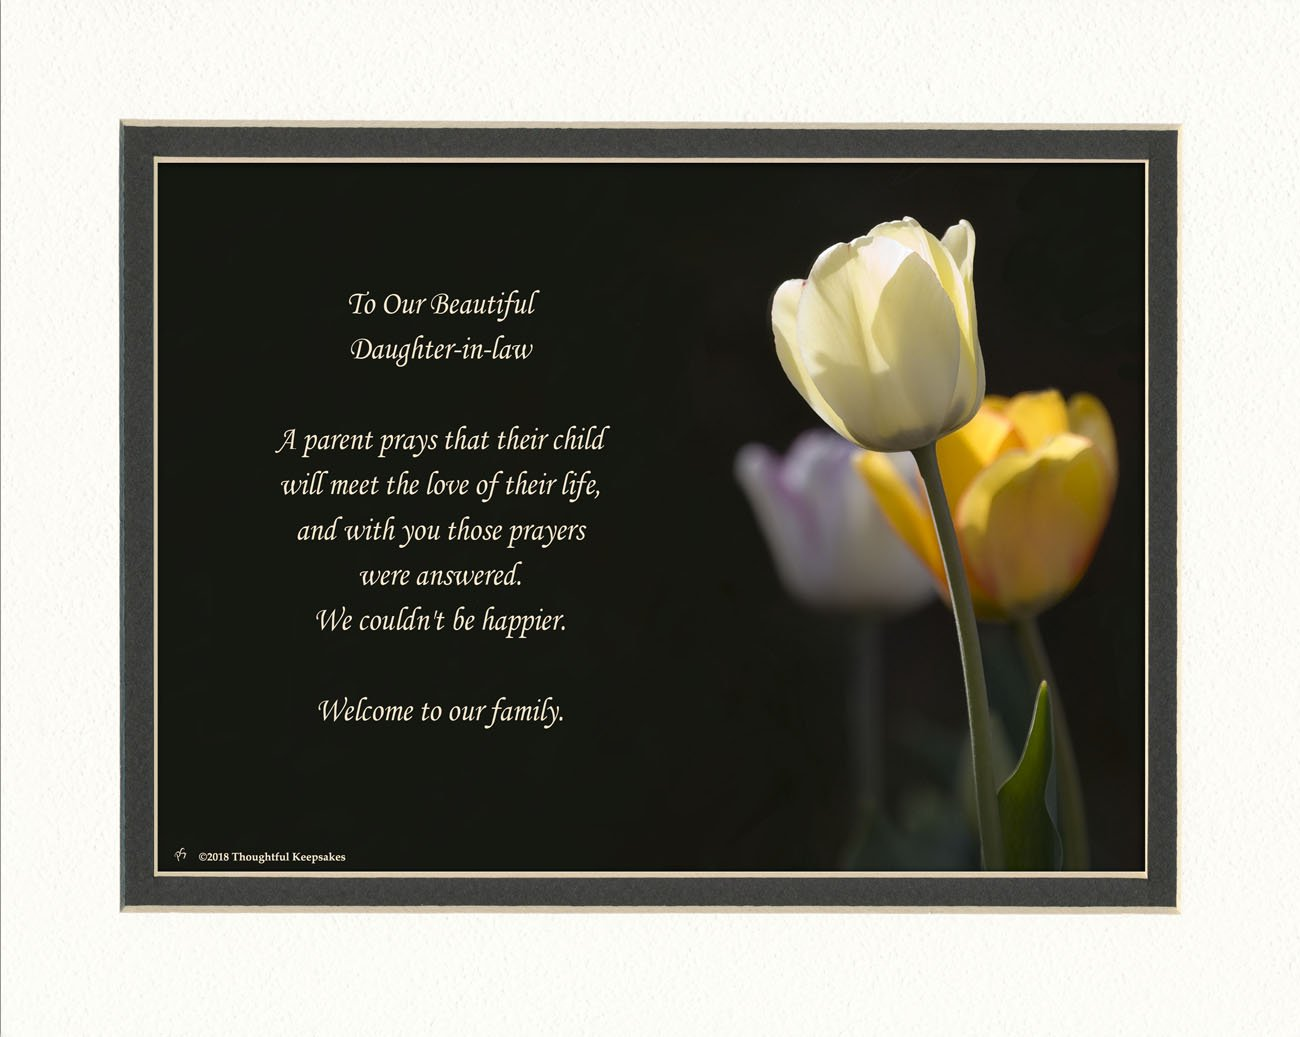 White tulip photo frame with poem